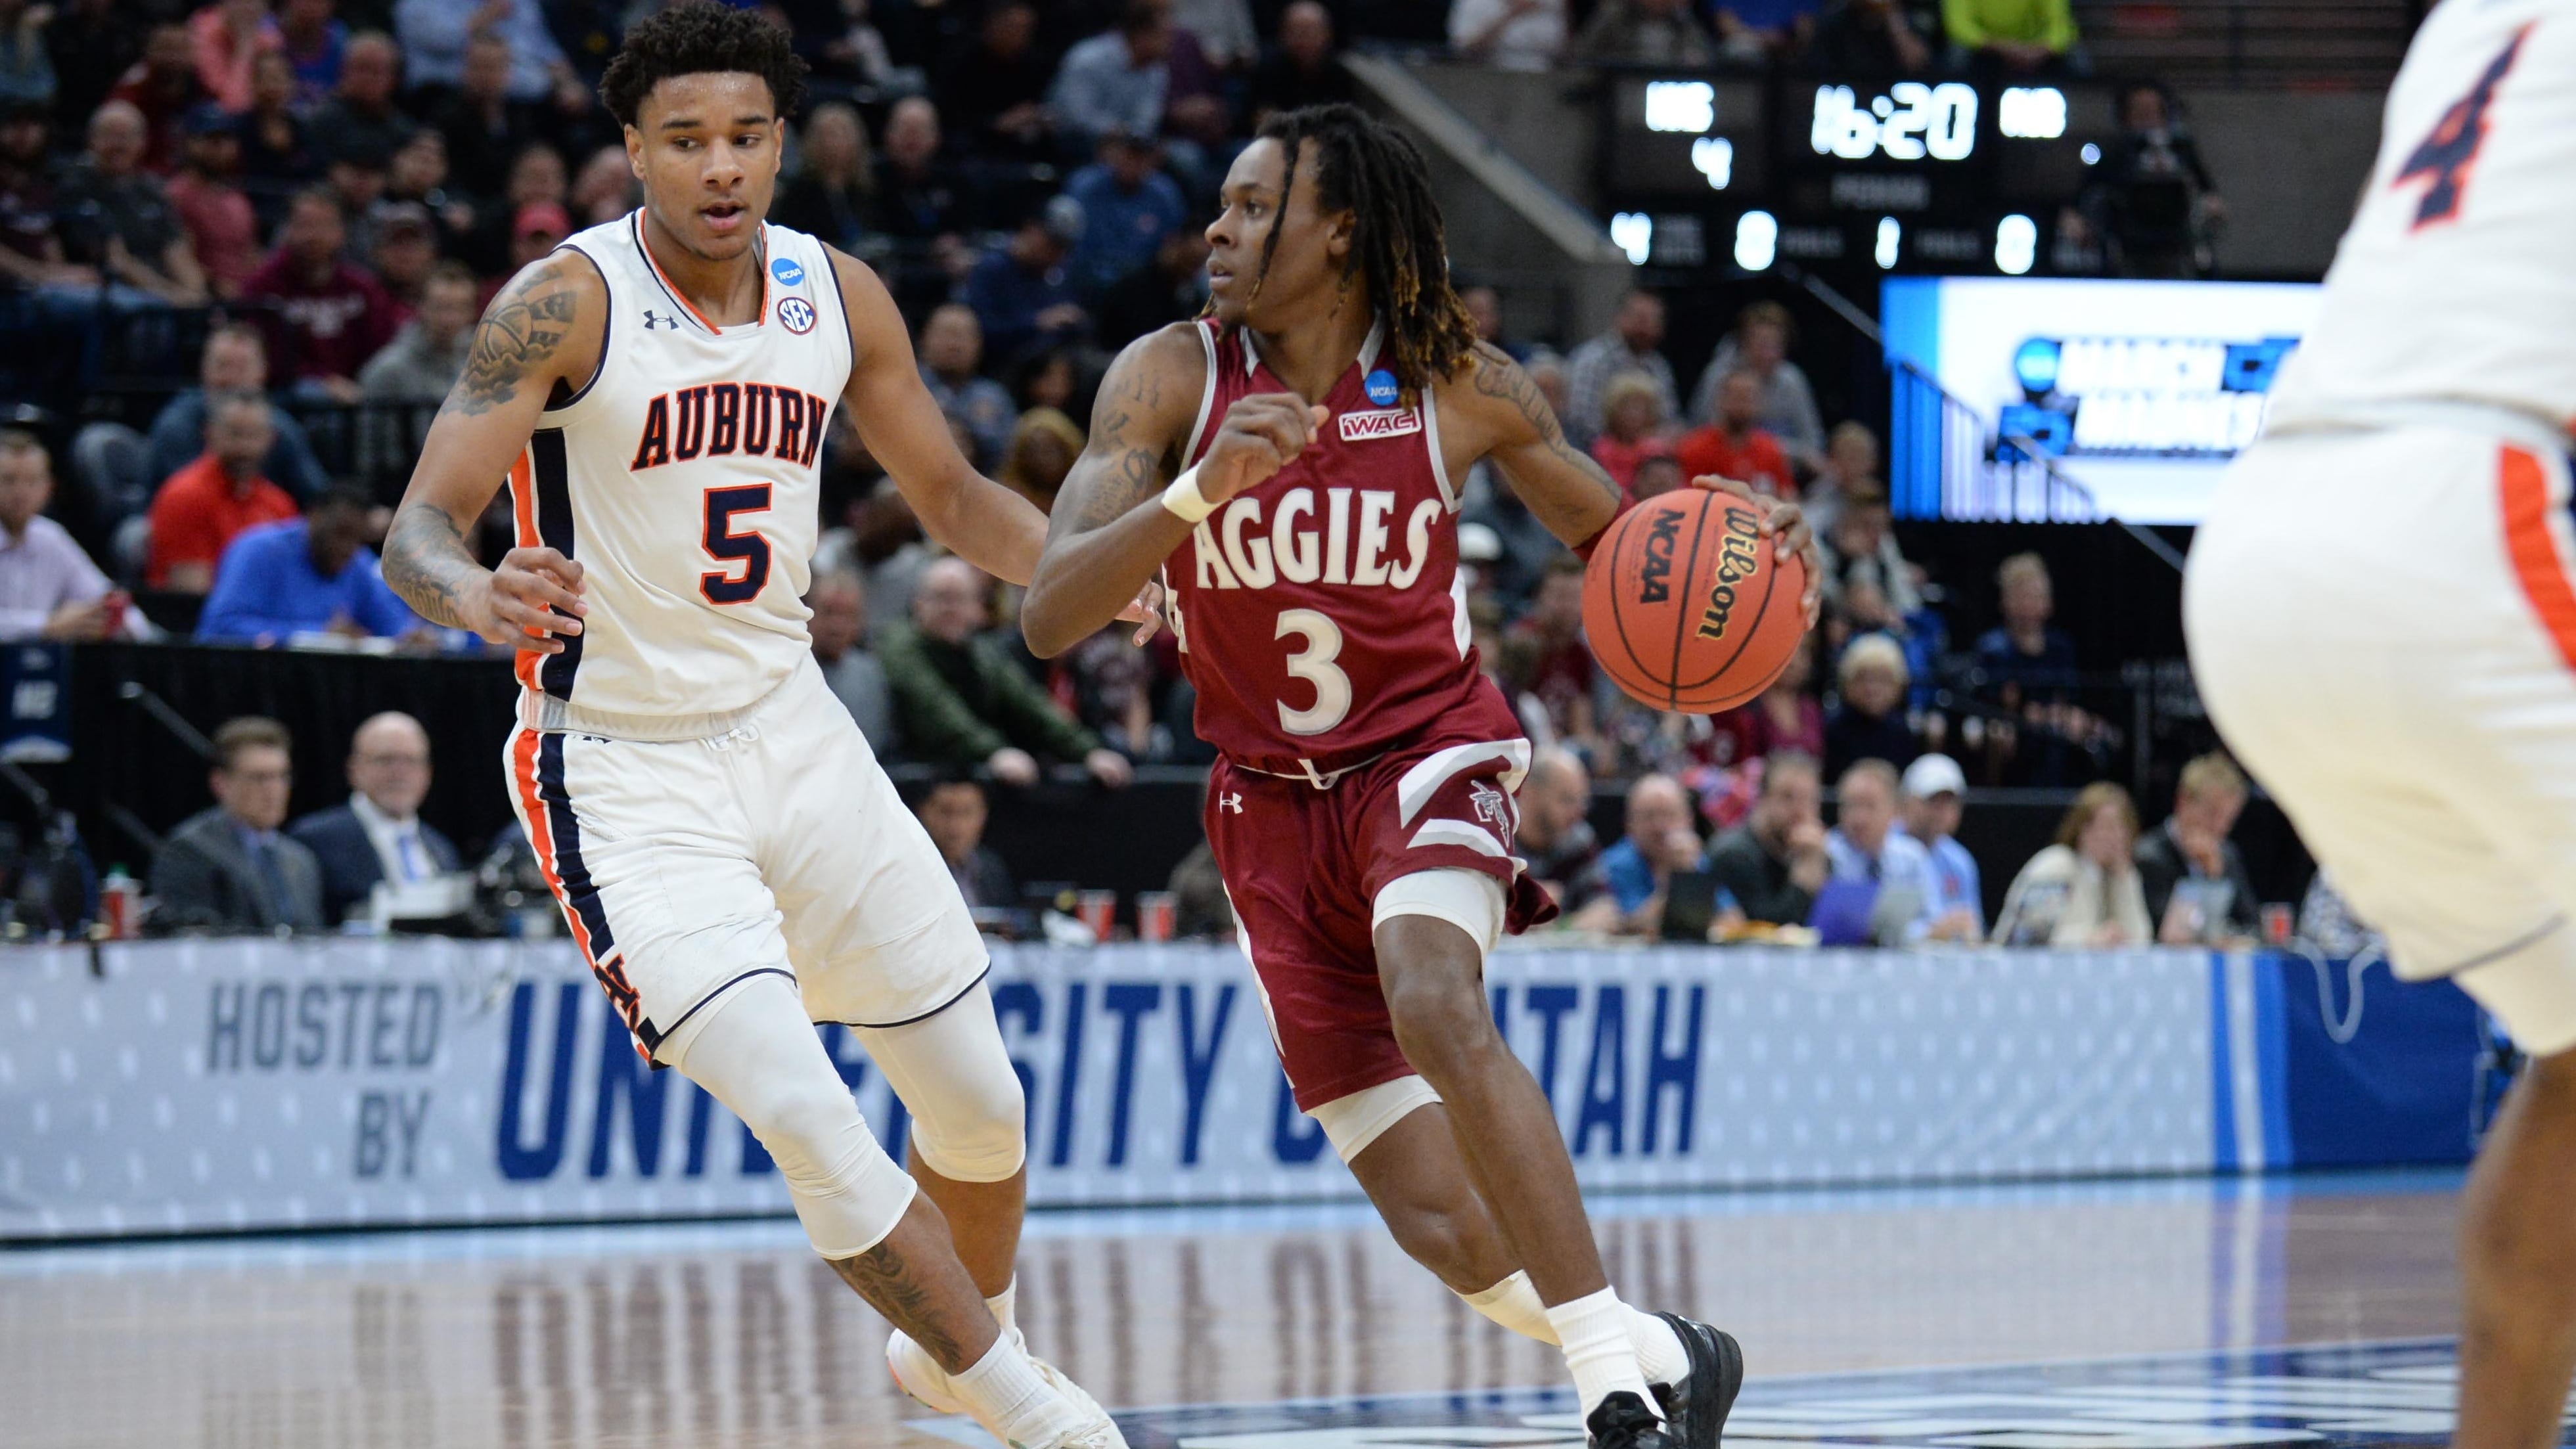 New Mexico State guard Terrell Brown drives around Auburn forward Chuma Okeke the first round of the 2019 NCAA tournament.